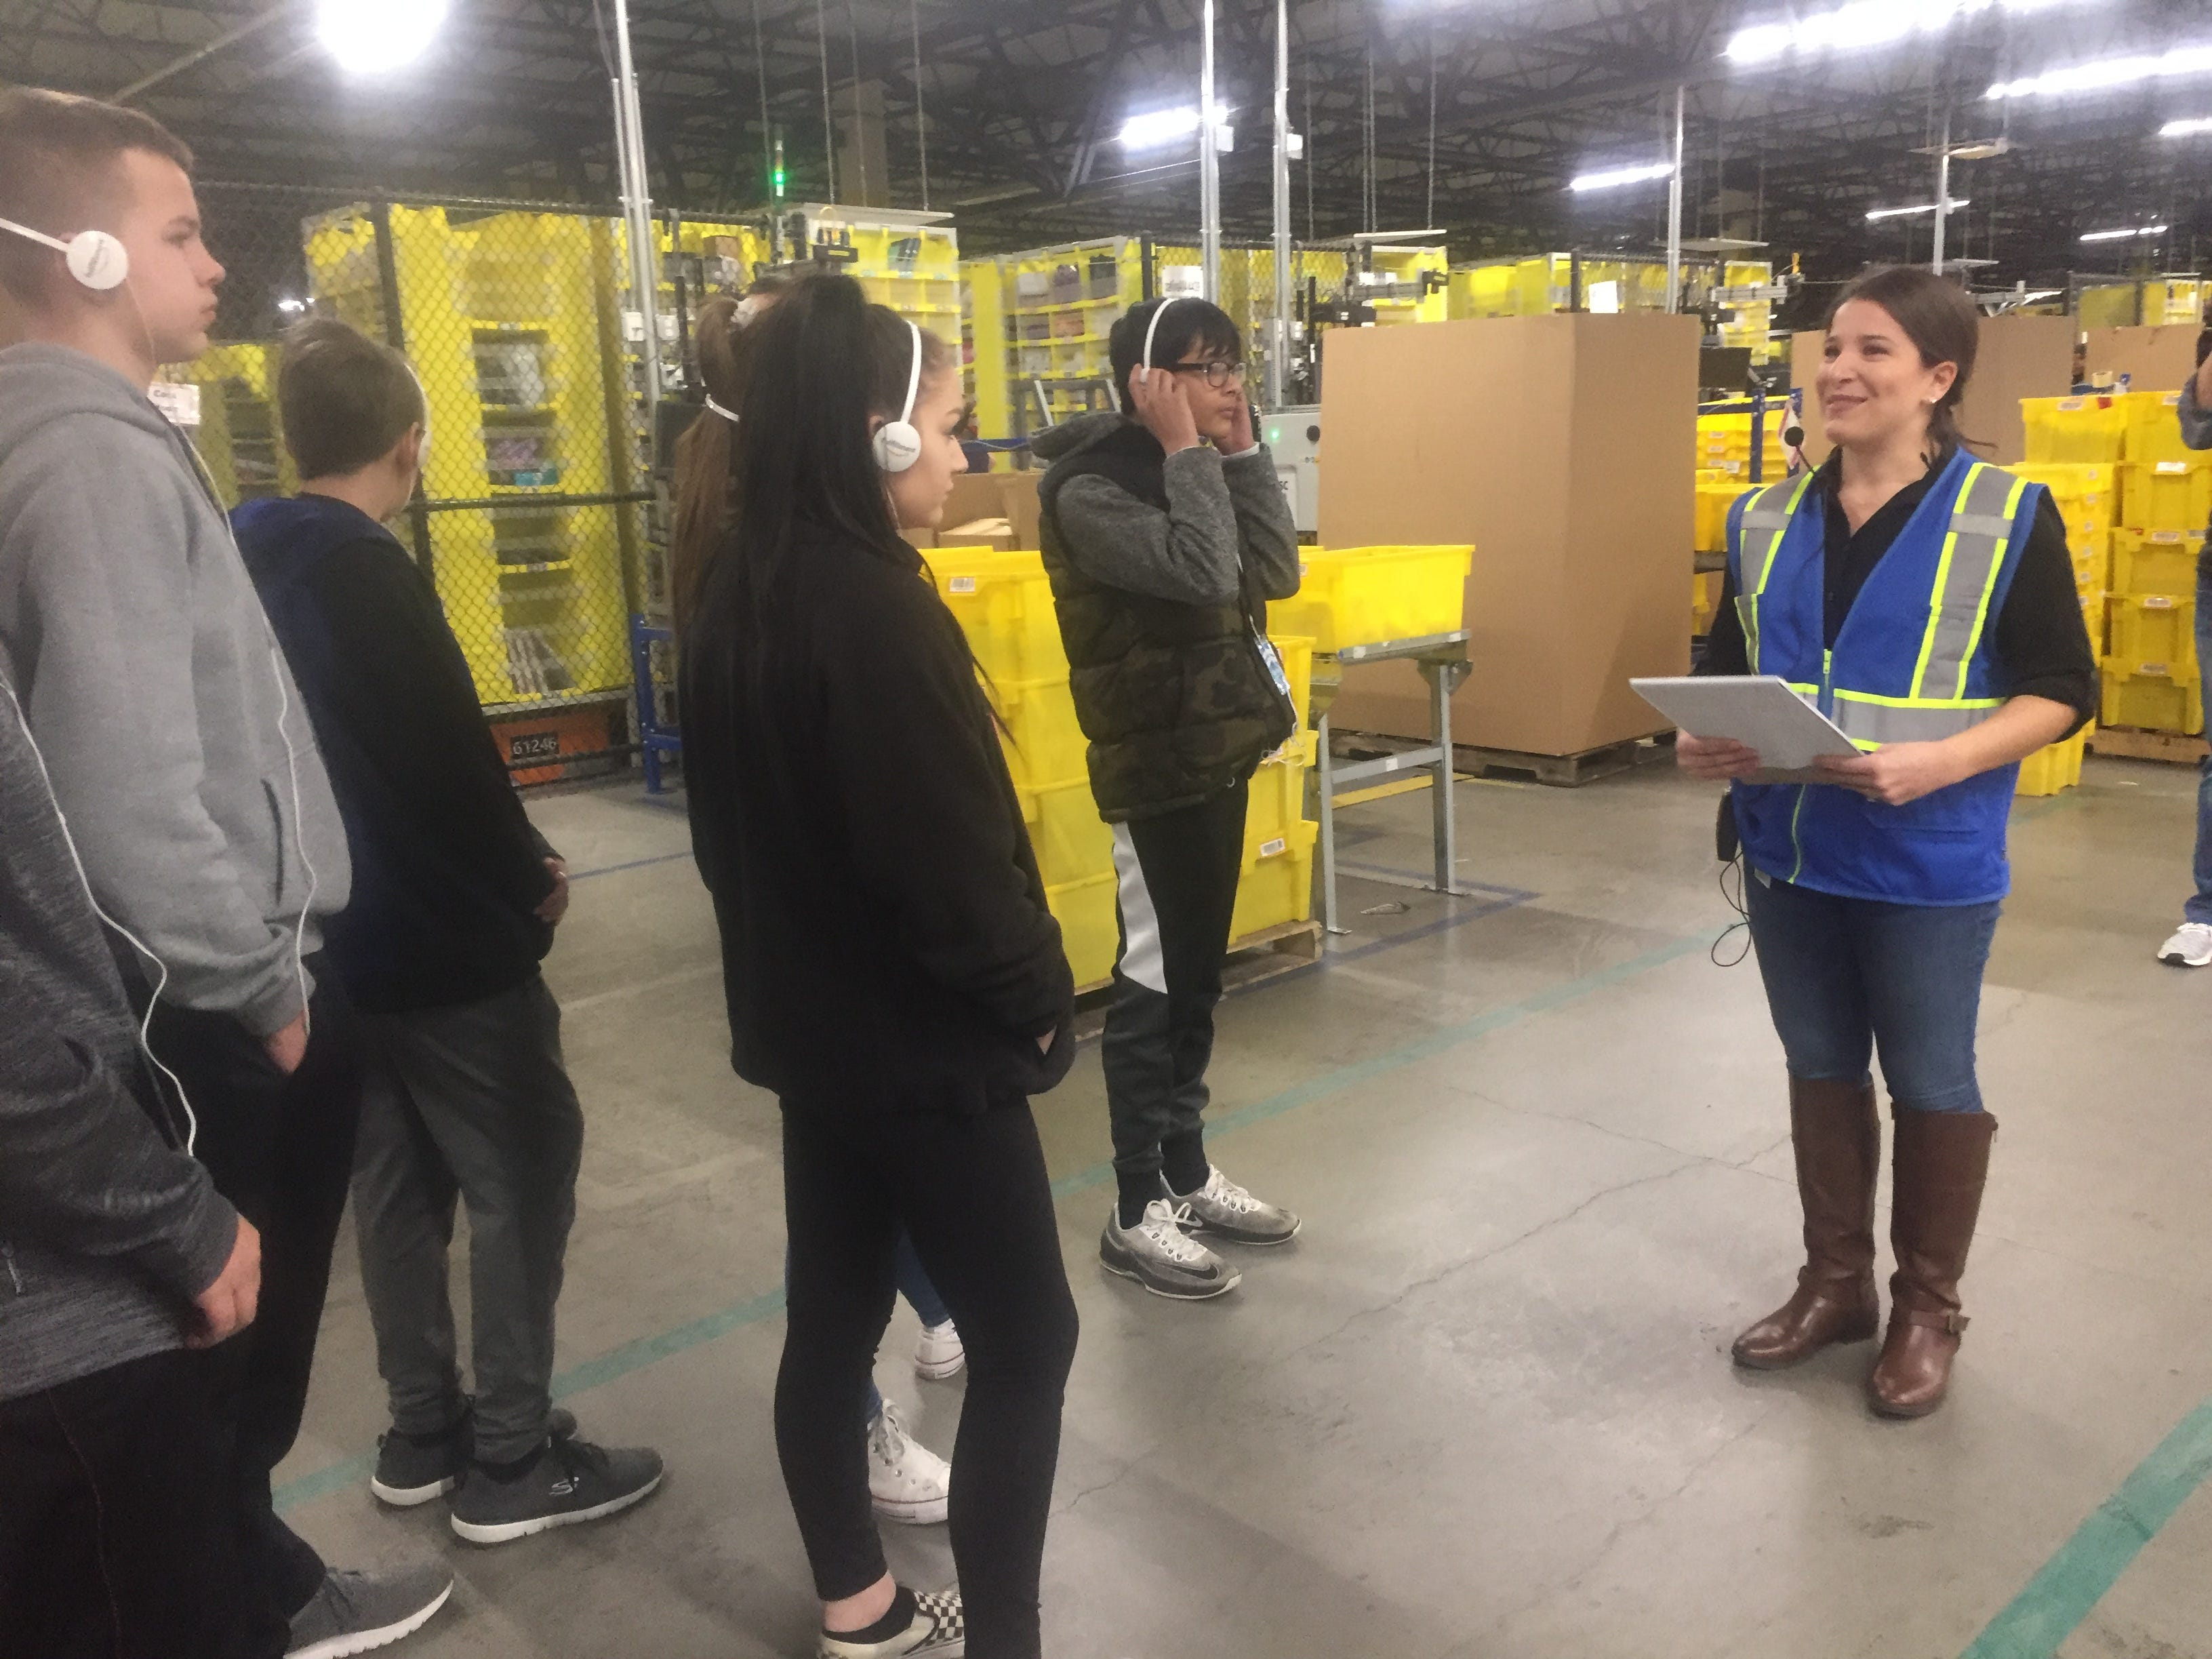 Amazon spokesperson Ali Hutchins (right) leads Southwest Licking students, step-by-step, through the Amazon fulfillment process during a Feb. 26 Etna facility tour.